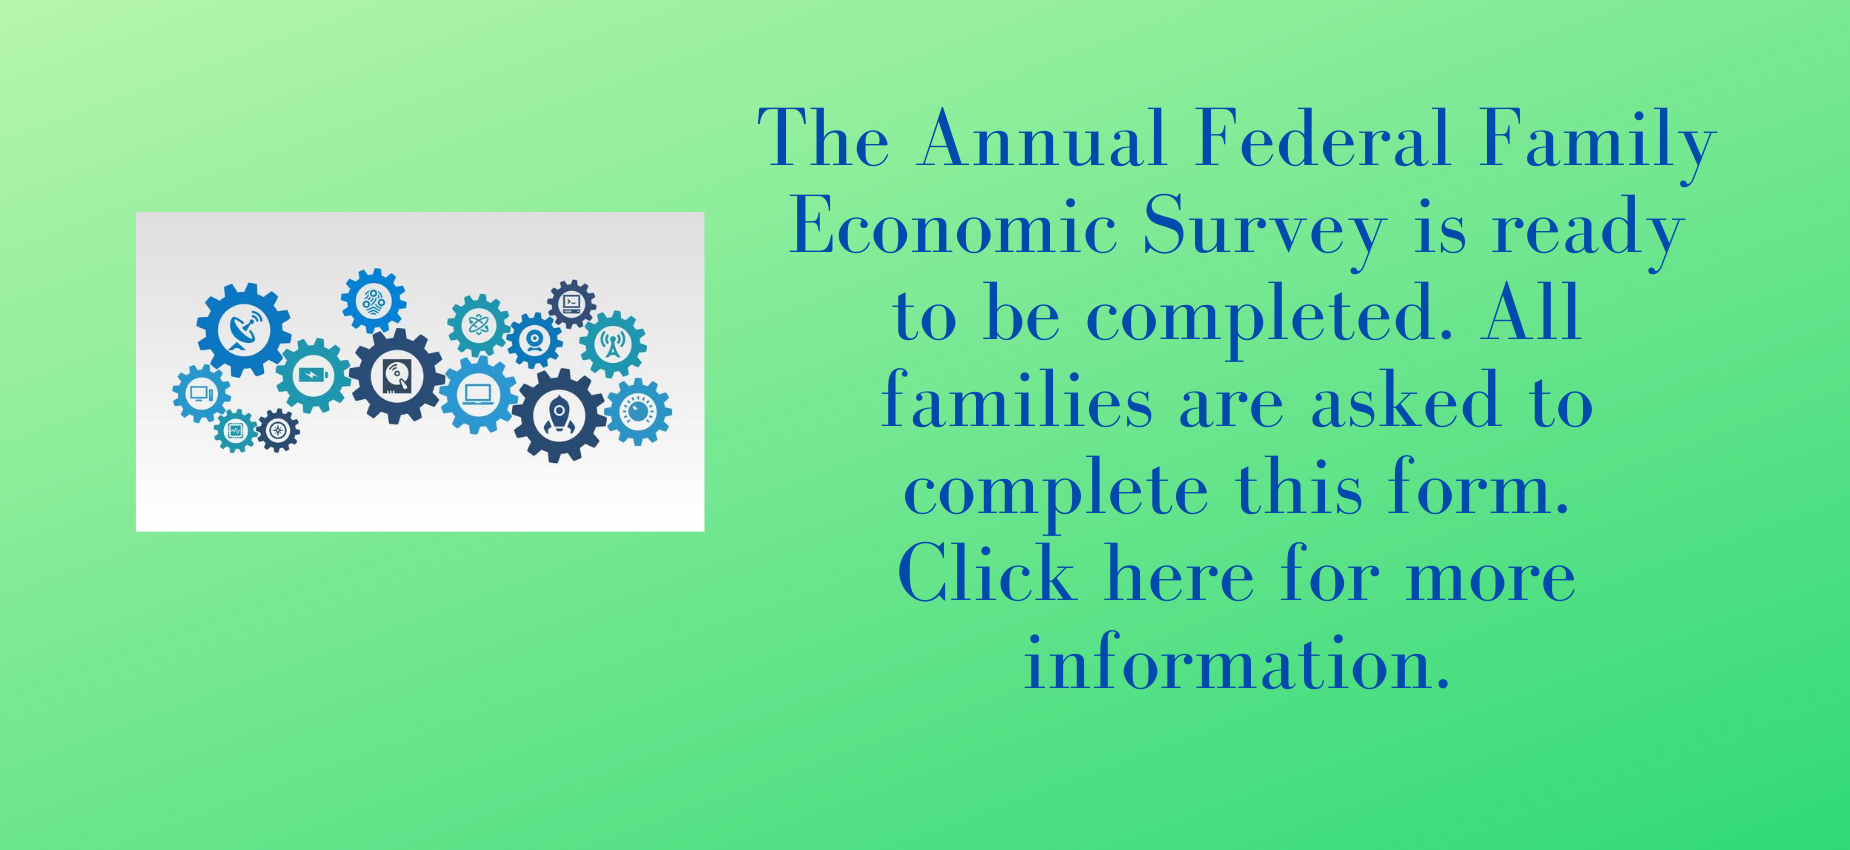 Complete Annual Federal Family Economic Survey.